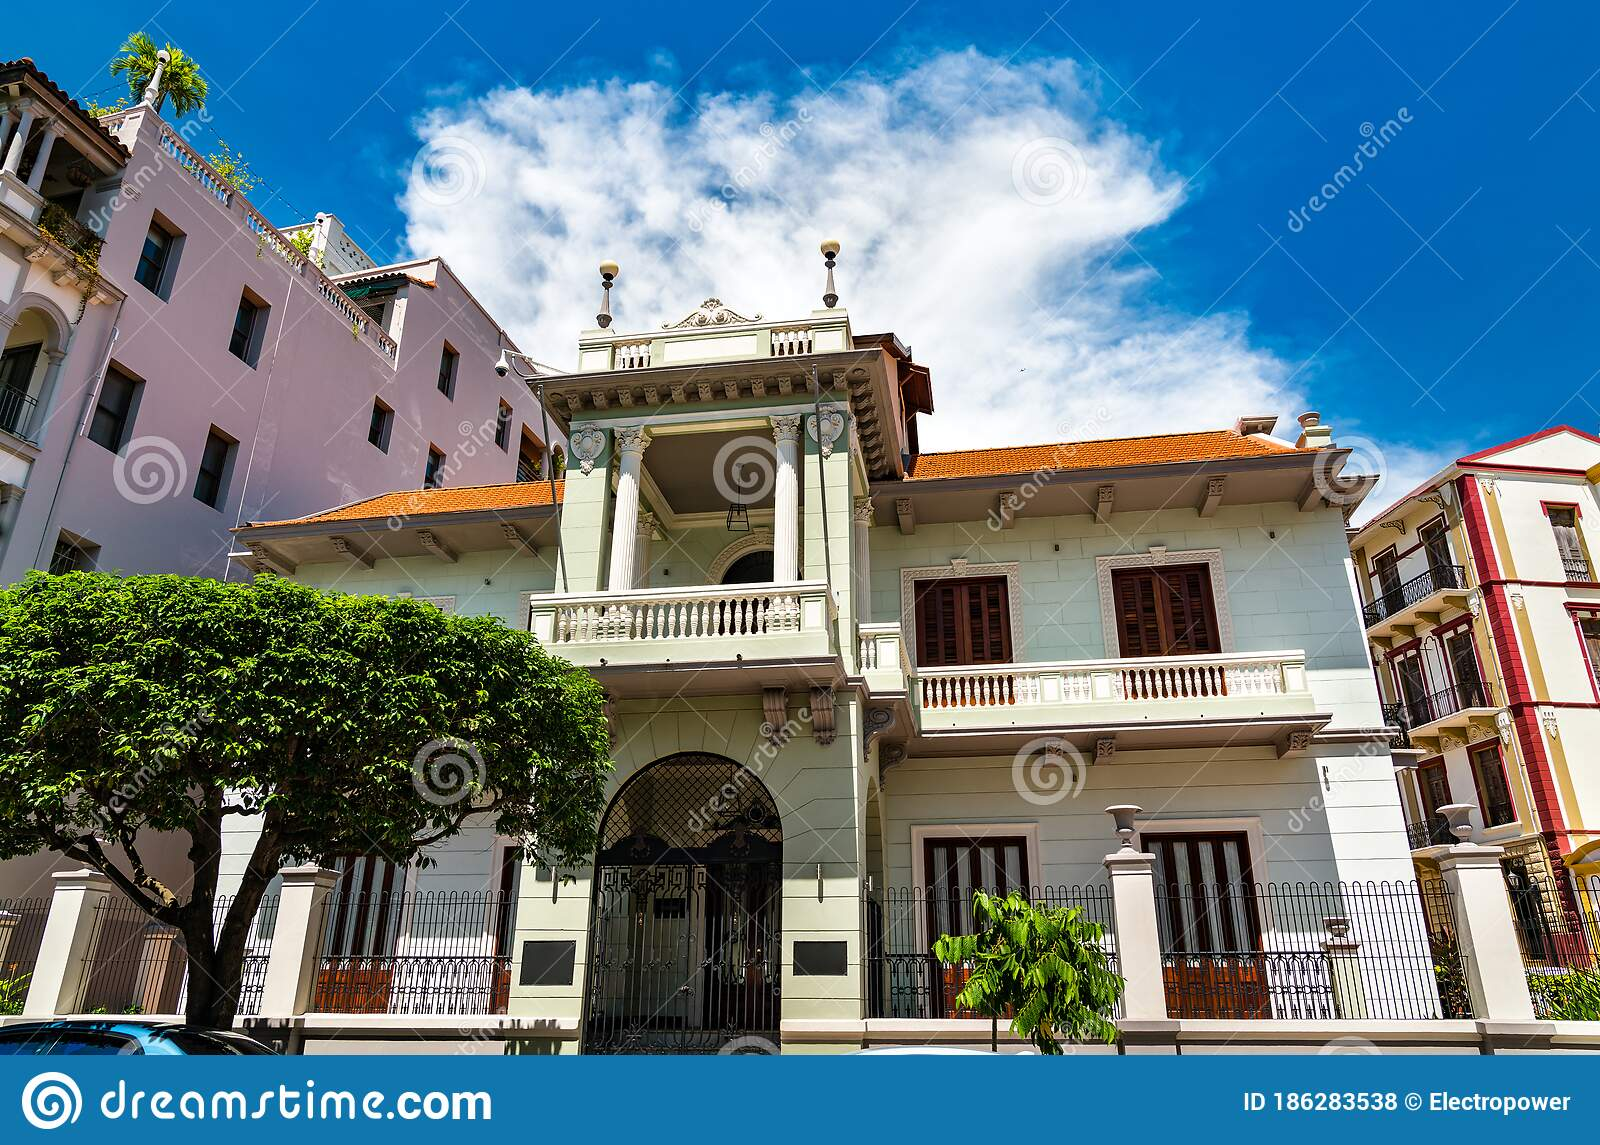 Spanish Colonial House In Casco Viejo Panama City Stock Photo Image Of Architecture Beautiful 186283538